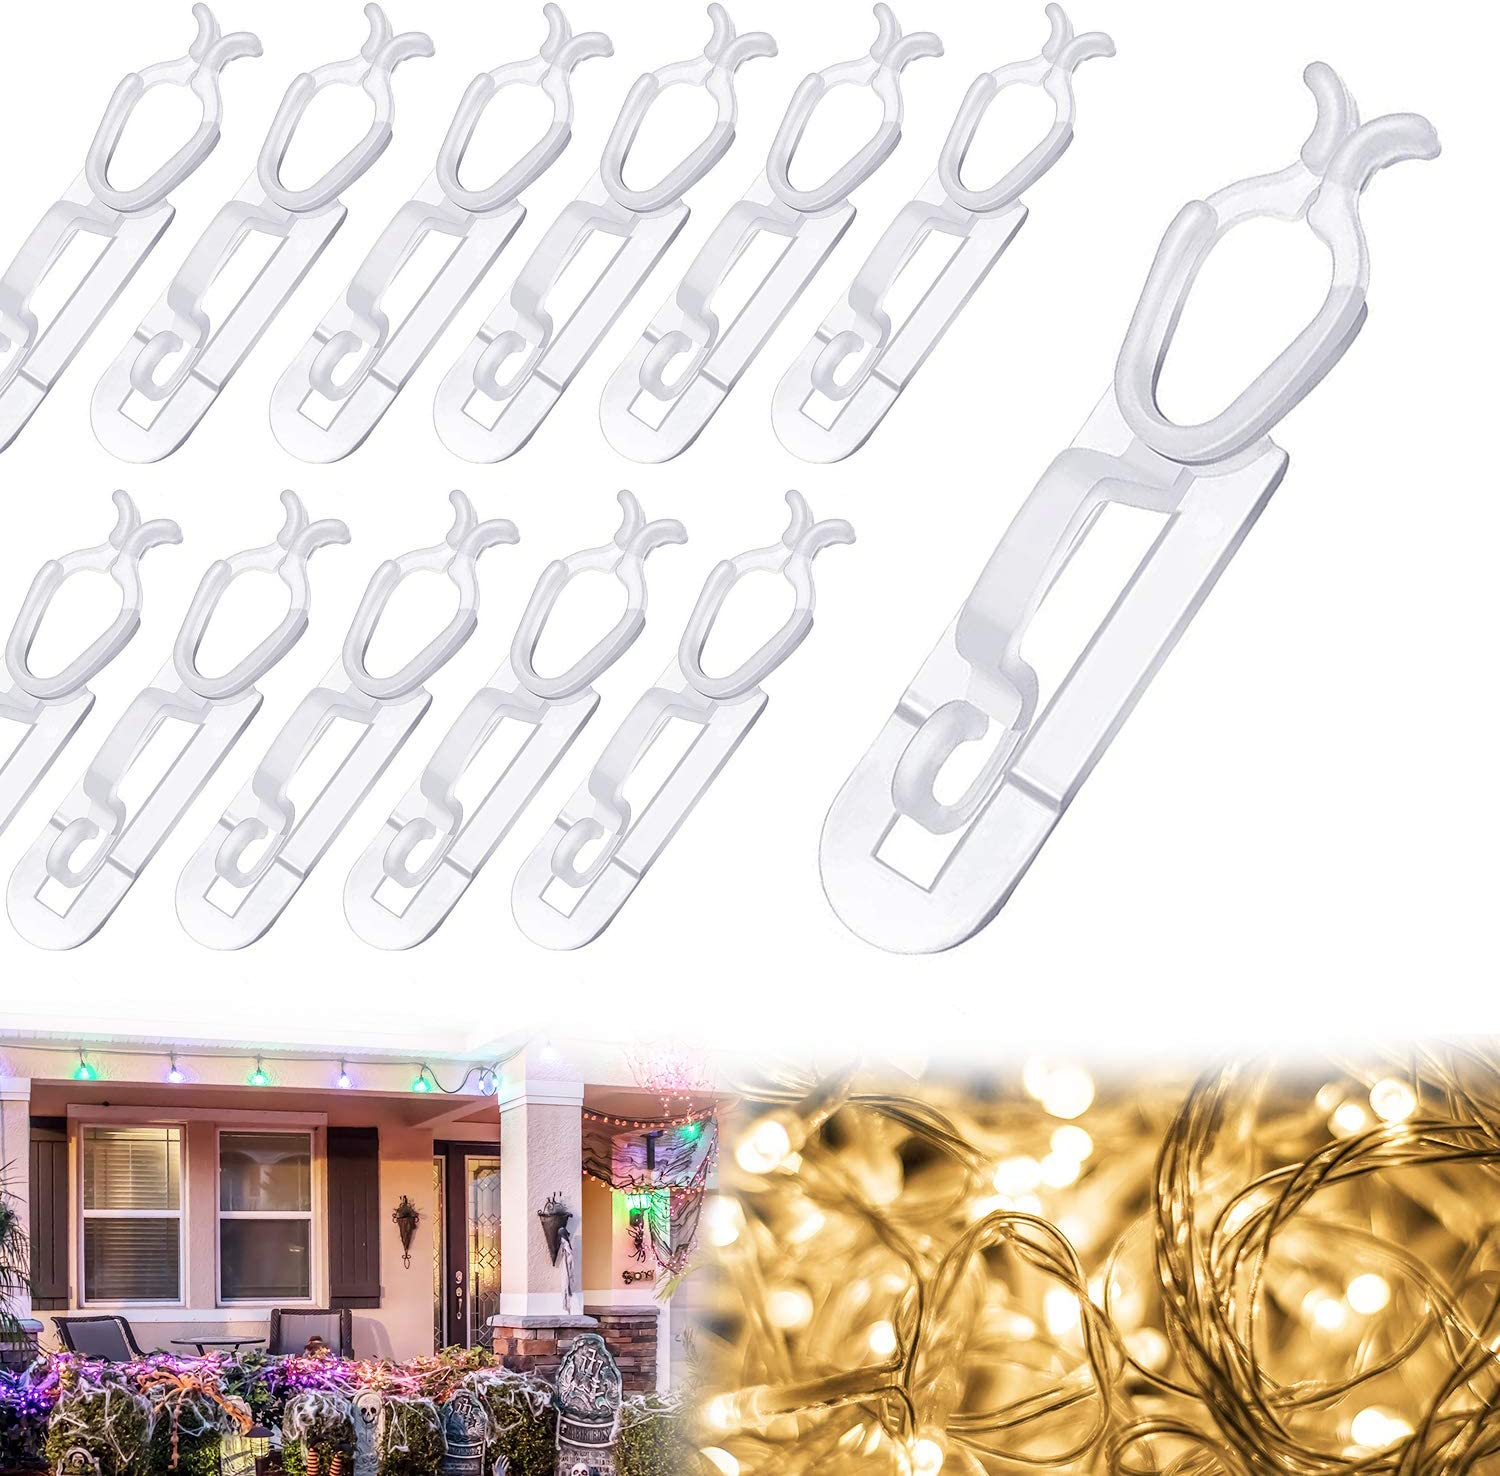 80 PCS Christmas Gutter Hooks Light Clips, Gutter Clips Light Hang Hooks Compatible with C6, C7, C9 and LED Mini String Lights for Xmas Decoration Outdoor, Roof Ridge Line, Fence